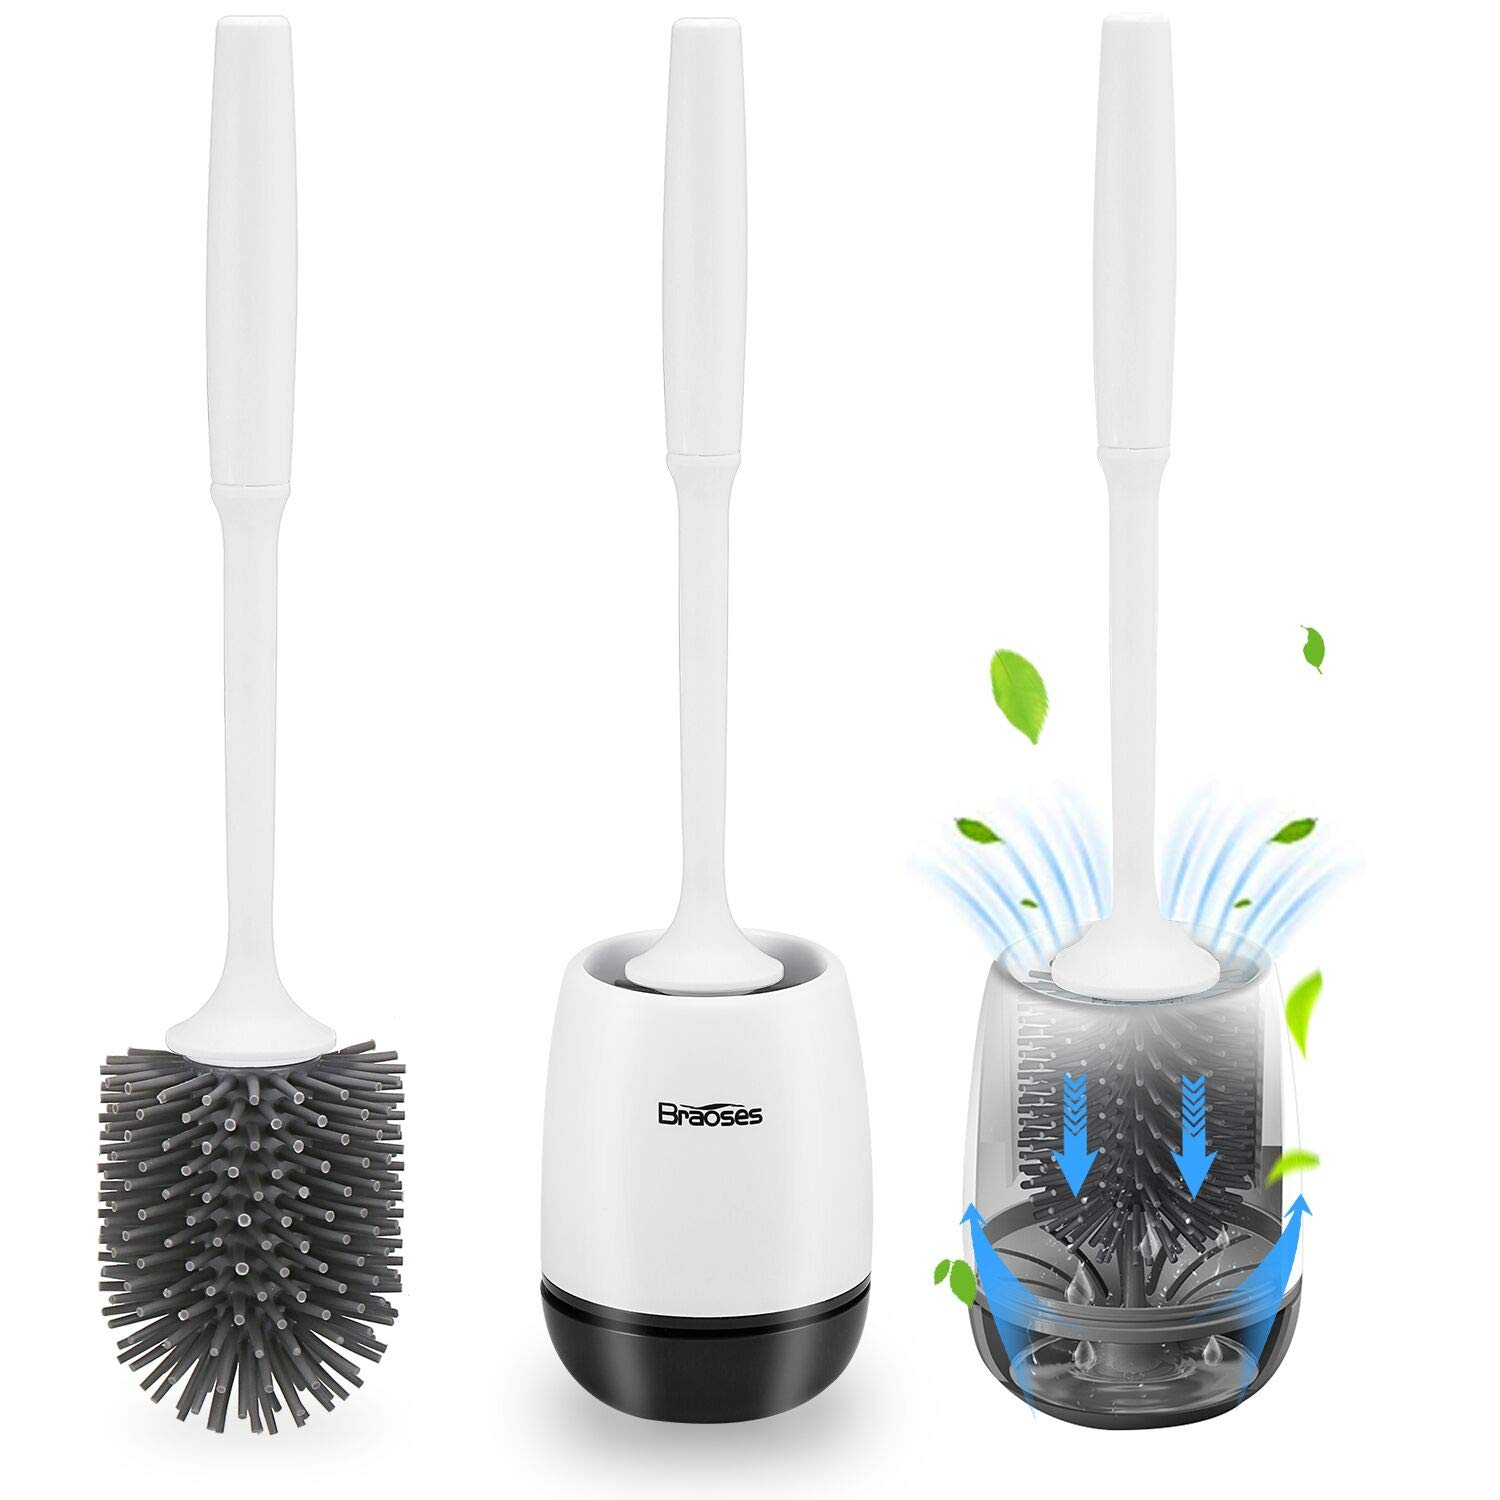 Braoses Toilet Brush and Holder Set with Antislip Grip Handle Soft Silicone Bristle, Toilet Bowl Cleaning Brush for Bathroom, Hollow Suspension Drainage Holder (White-Black)